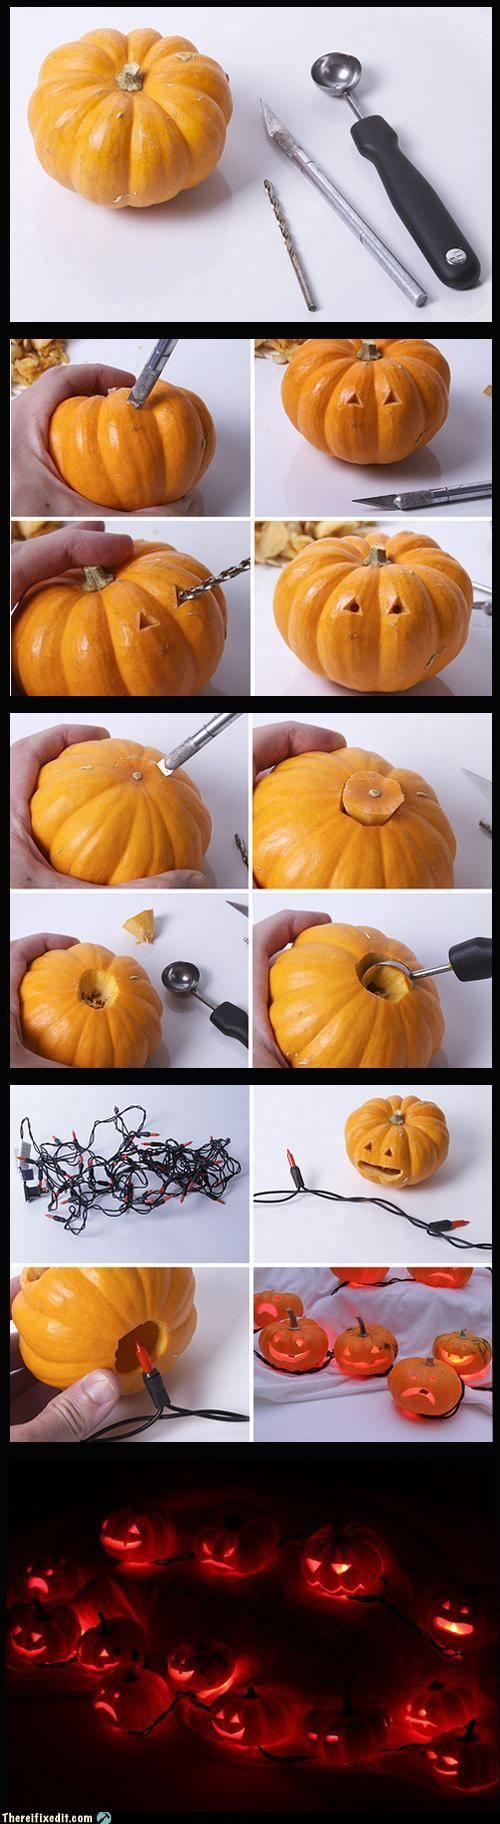 Carving small pumpkins and put the hole in the bottom instead and living a rail or walkway with lights placed inside to light them up.